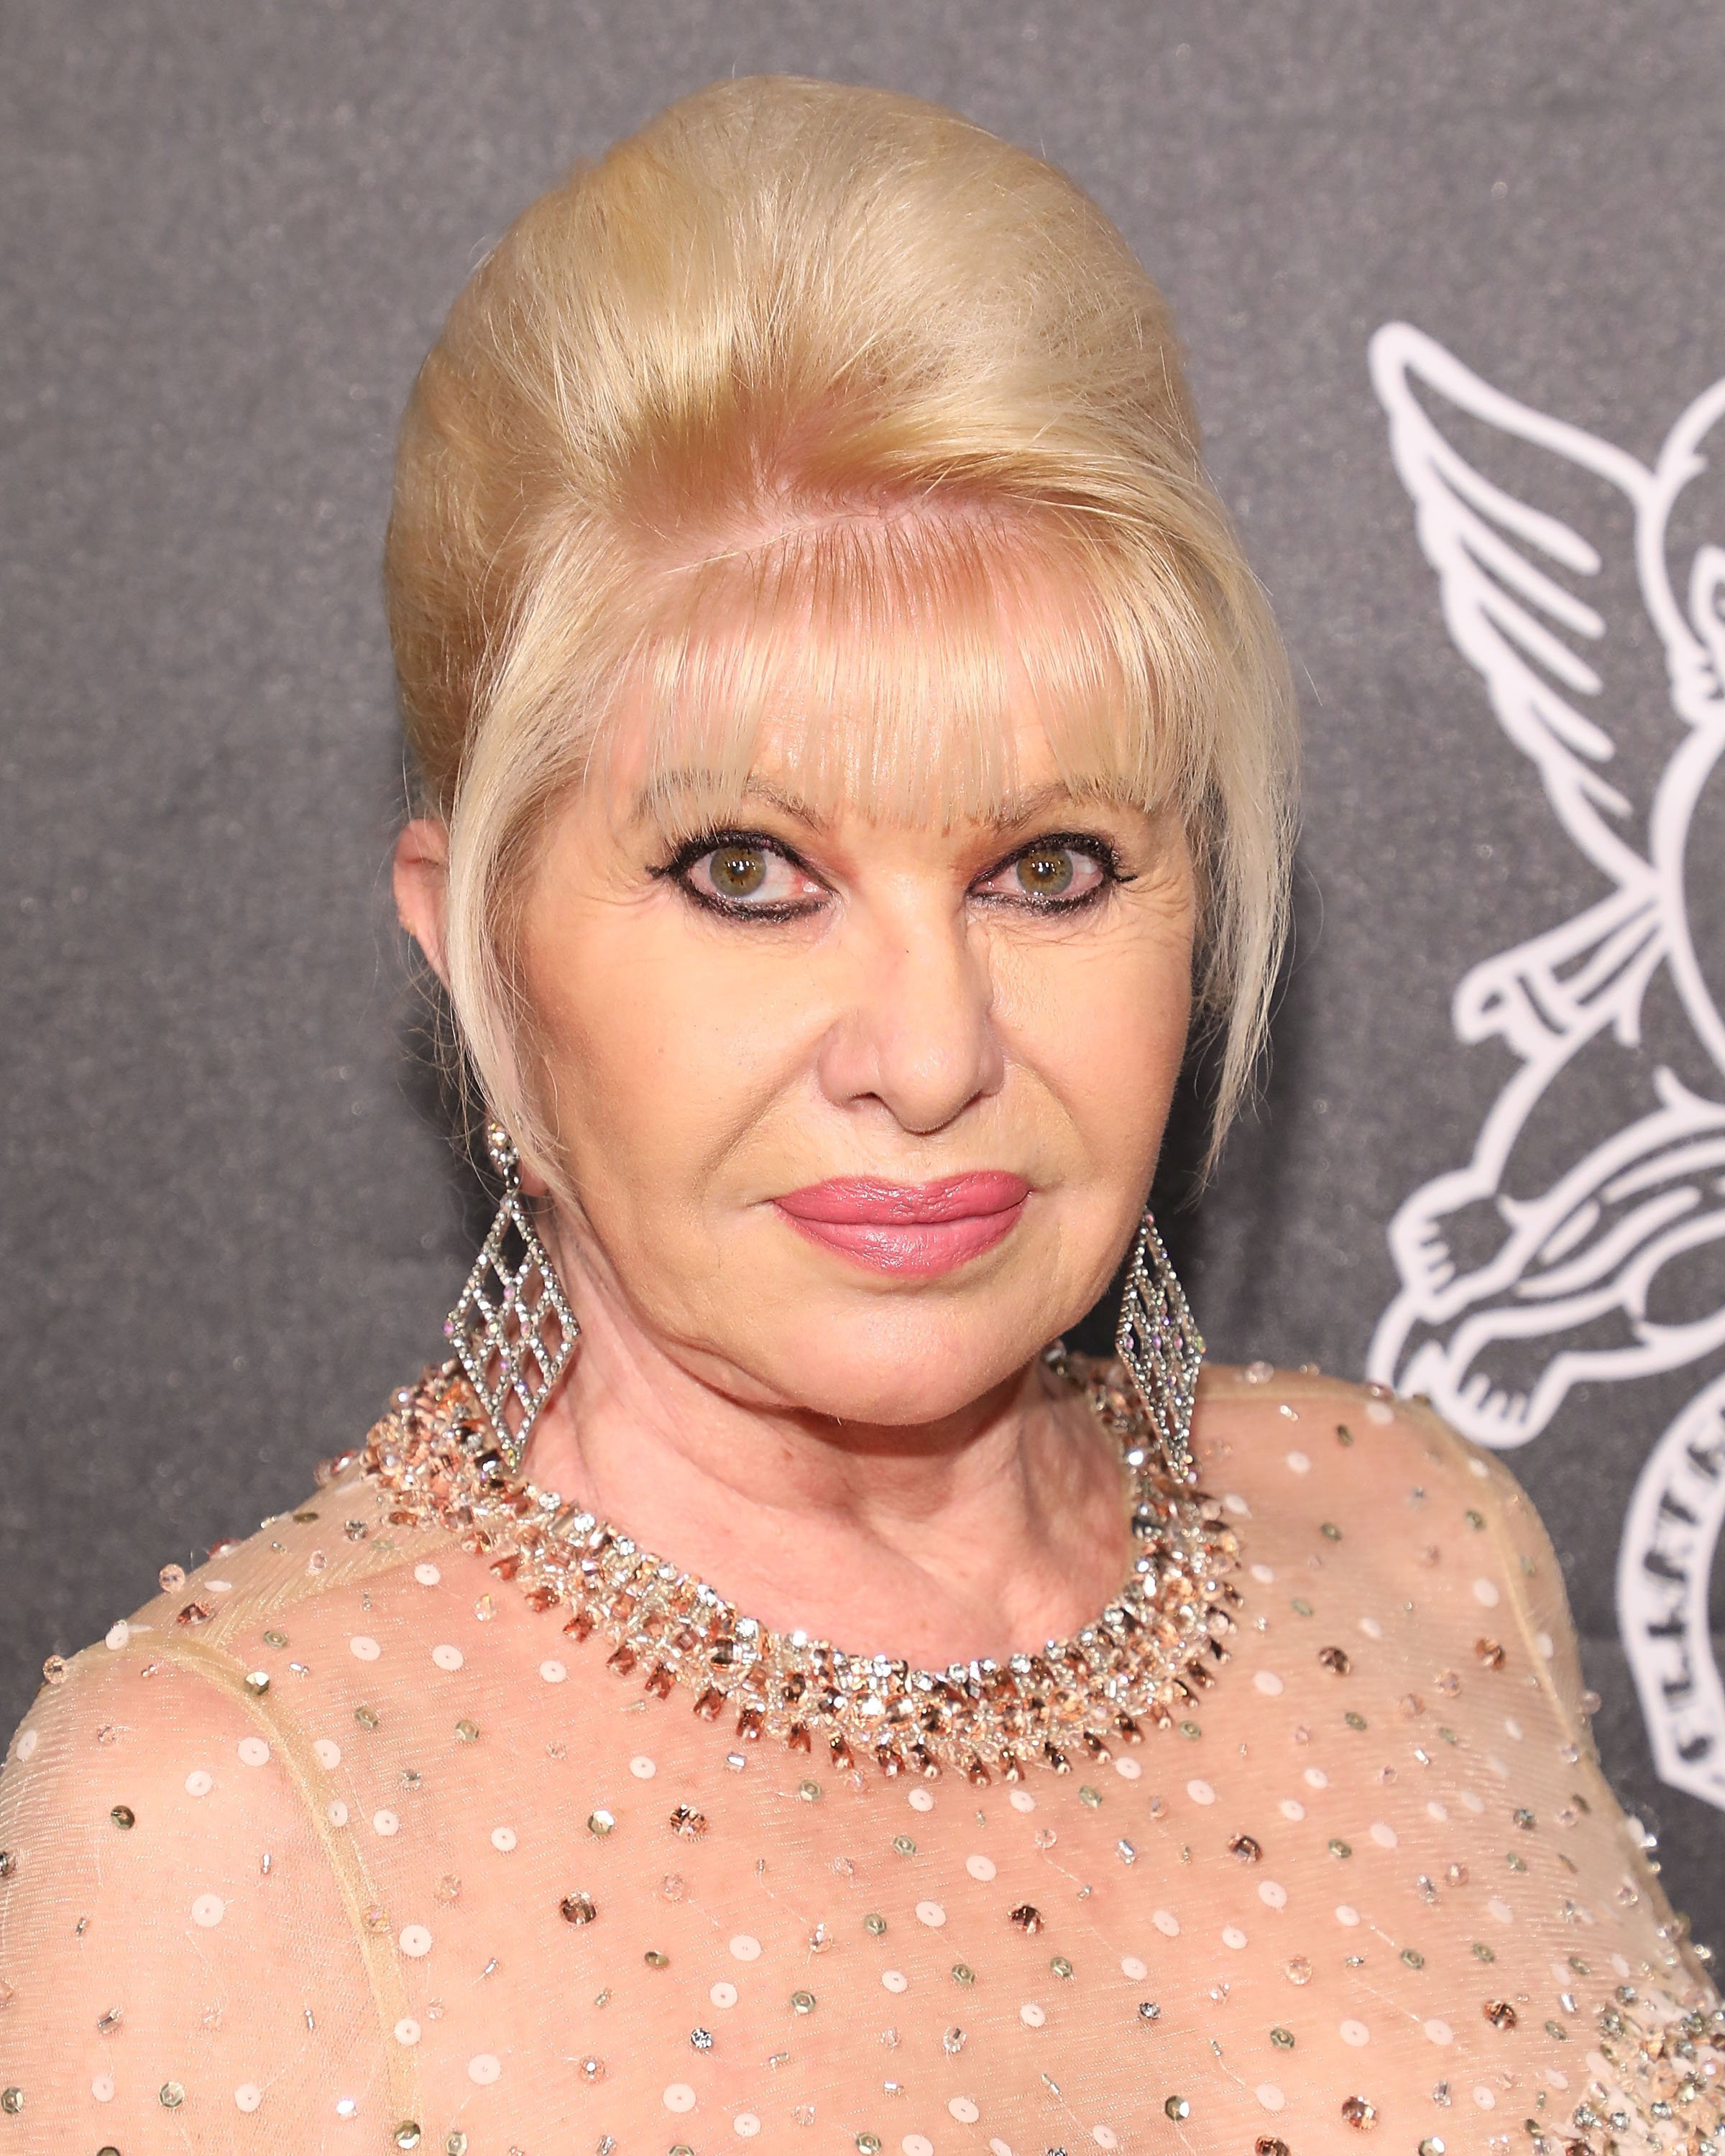 Ivana Trump attends the 2018 Angel Ball at Cipriani Wall Street on October 22, 2018 in New York City | Photo: Getty Images